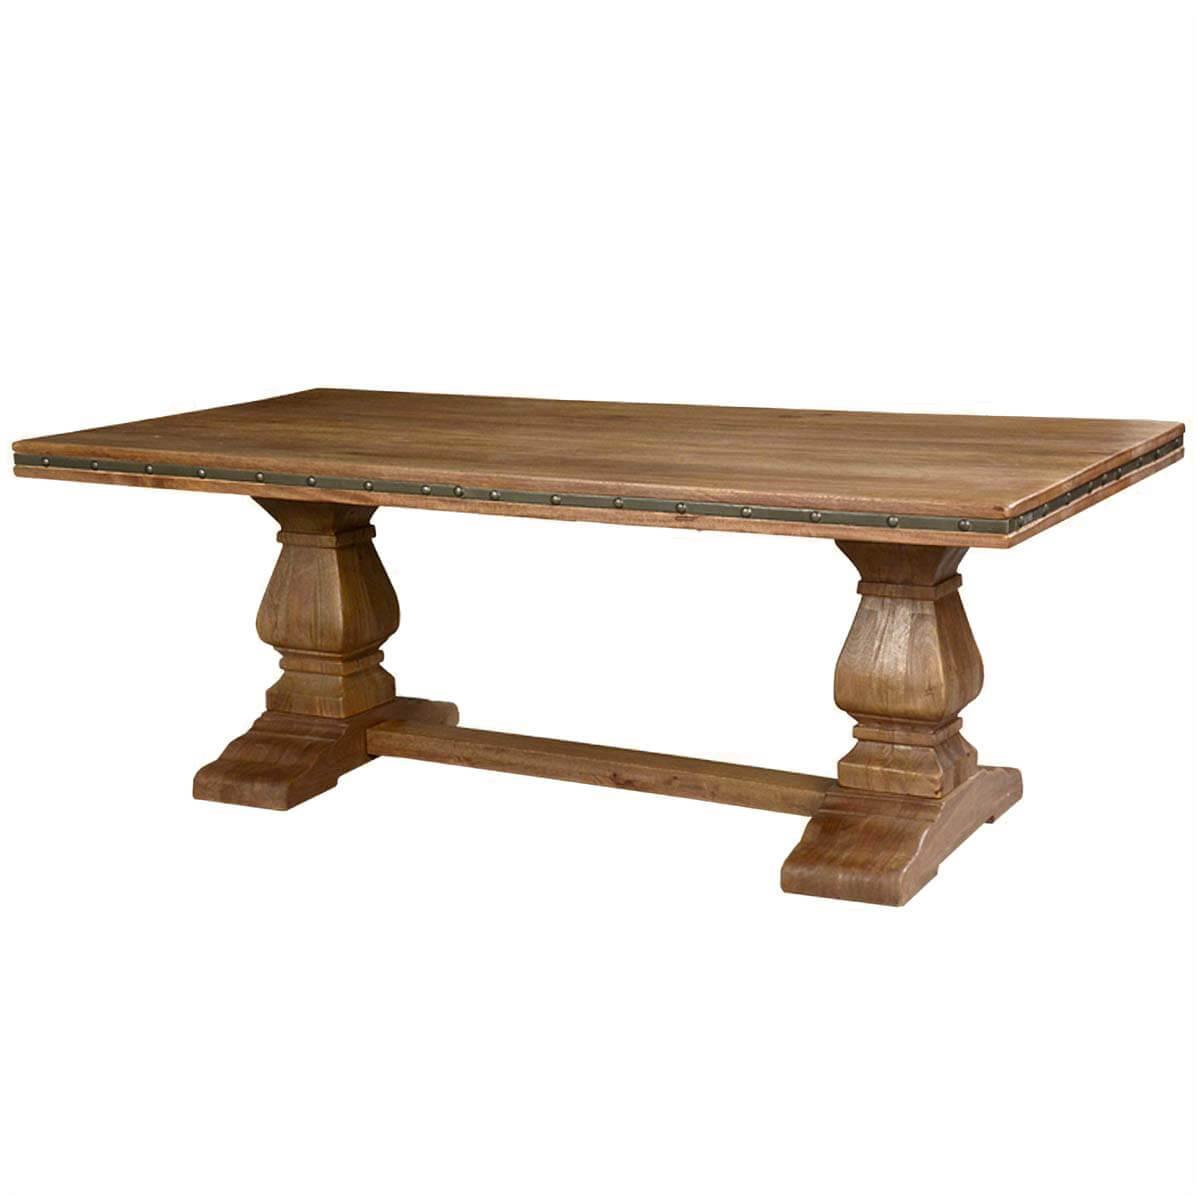 Rustic solid wood trestle pedestal base harvest dining table for Pedestal dining table